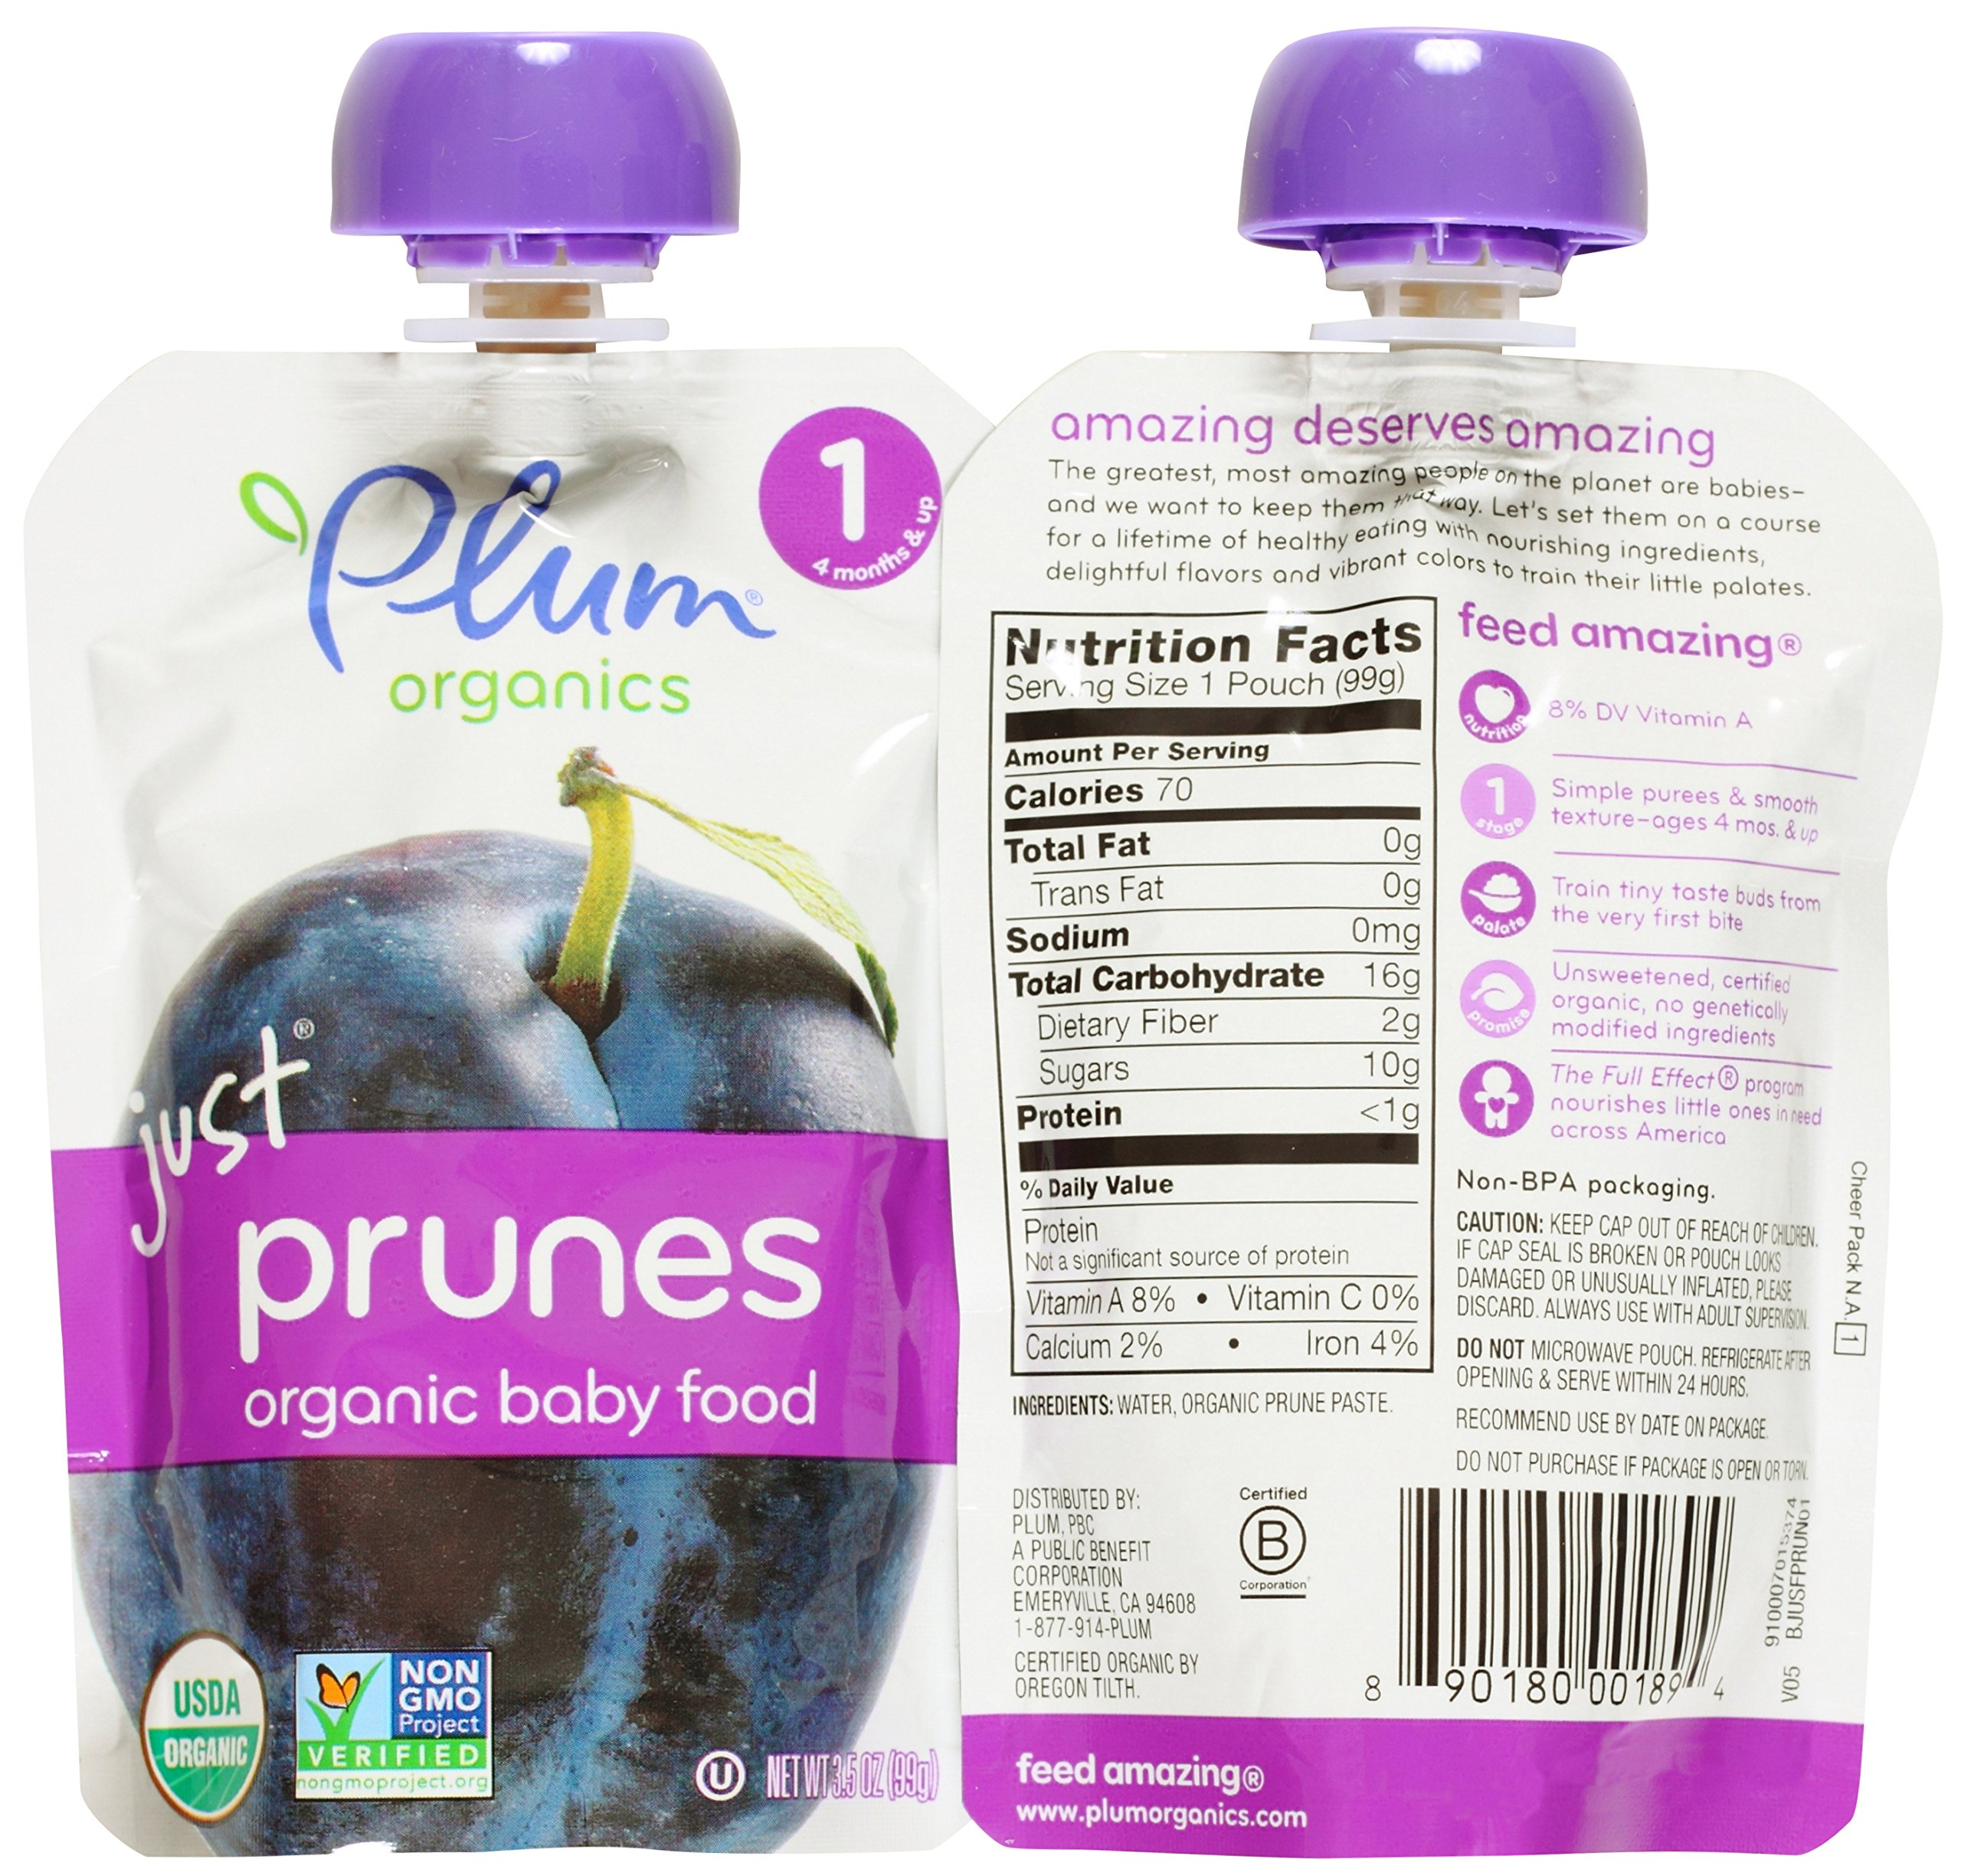 Plum Organics Stage 1 Just Fruit & Veggies Variety Pouch Bundle: (2) Just Prunes 3.5oz, (2) Just Mangos 3.5oz, (2) Just Sweet Potato 3oz, and (2) Just Peaches 3.5oz (8 Pack Total) by Plum Organics (Image #2)